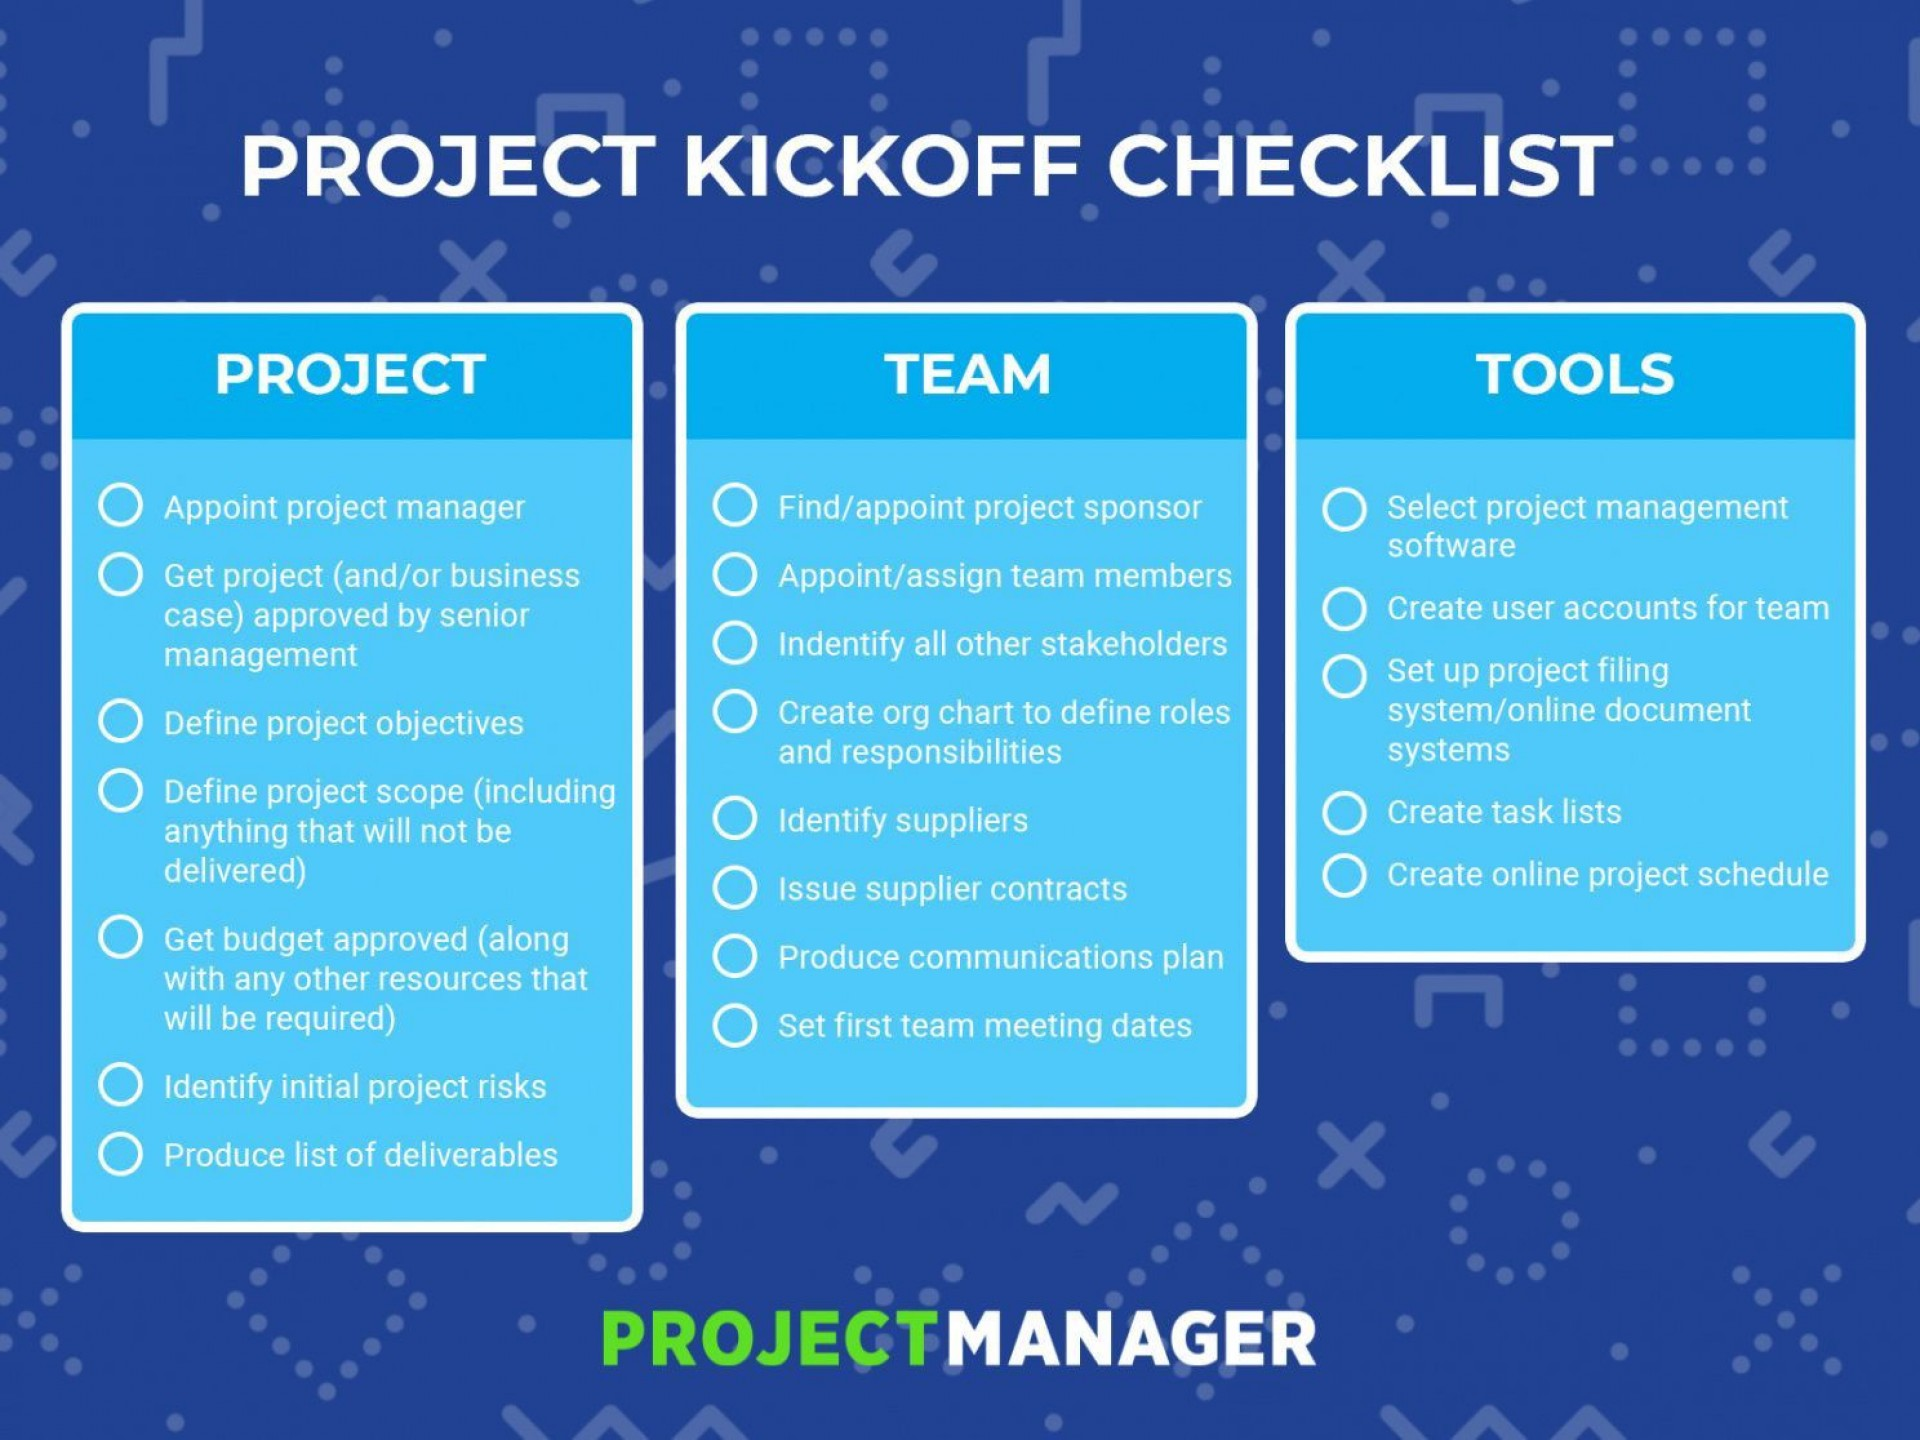 005 Impressive Project Kickoff Meeting Powerpoint Template Ppt Sample  Kick Off Presentation1920